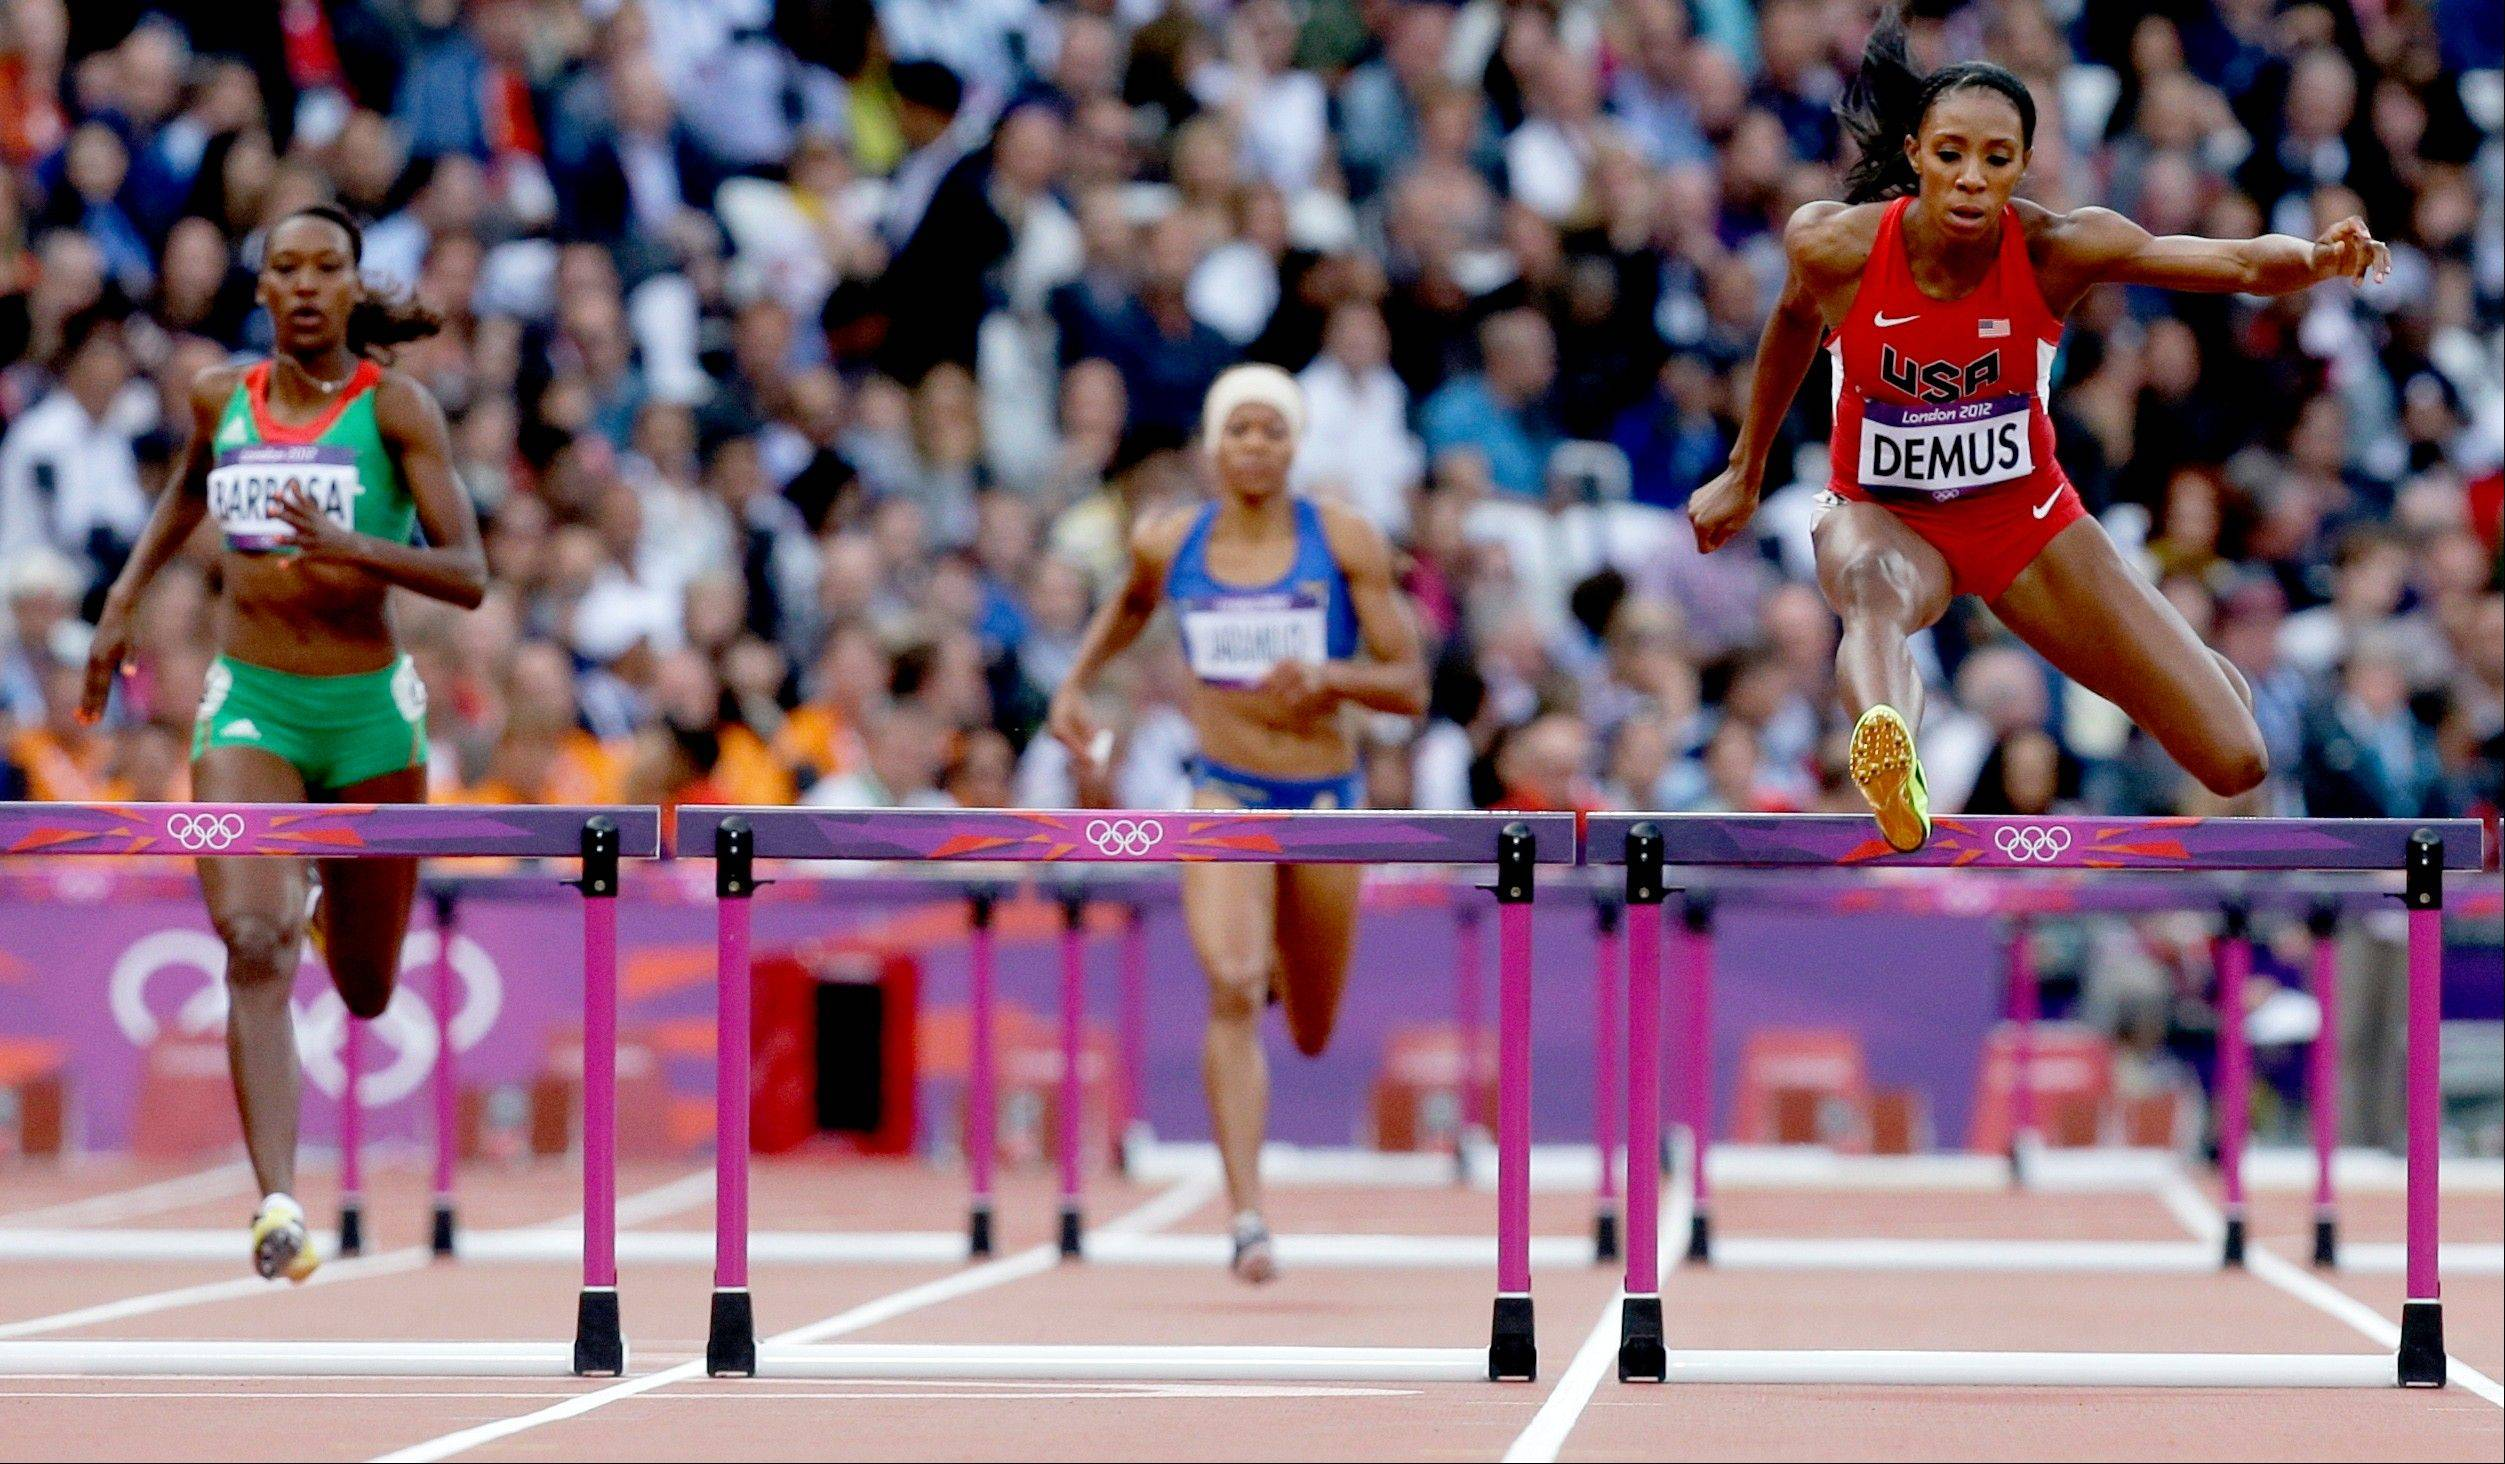 United States' Lashinda Demus right, jumps in a women's 400-meter hurdles heat during the athletics in the Olympic Stadium at the 2012 Summer Olympics, London, Sunday, Aug. 5, 2012.